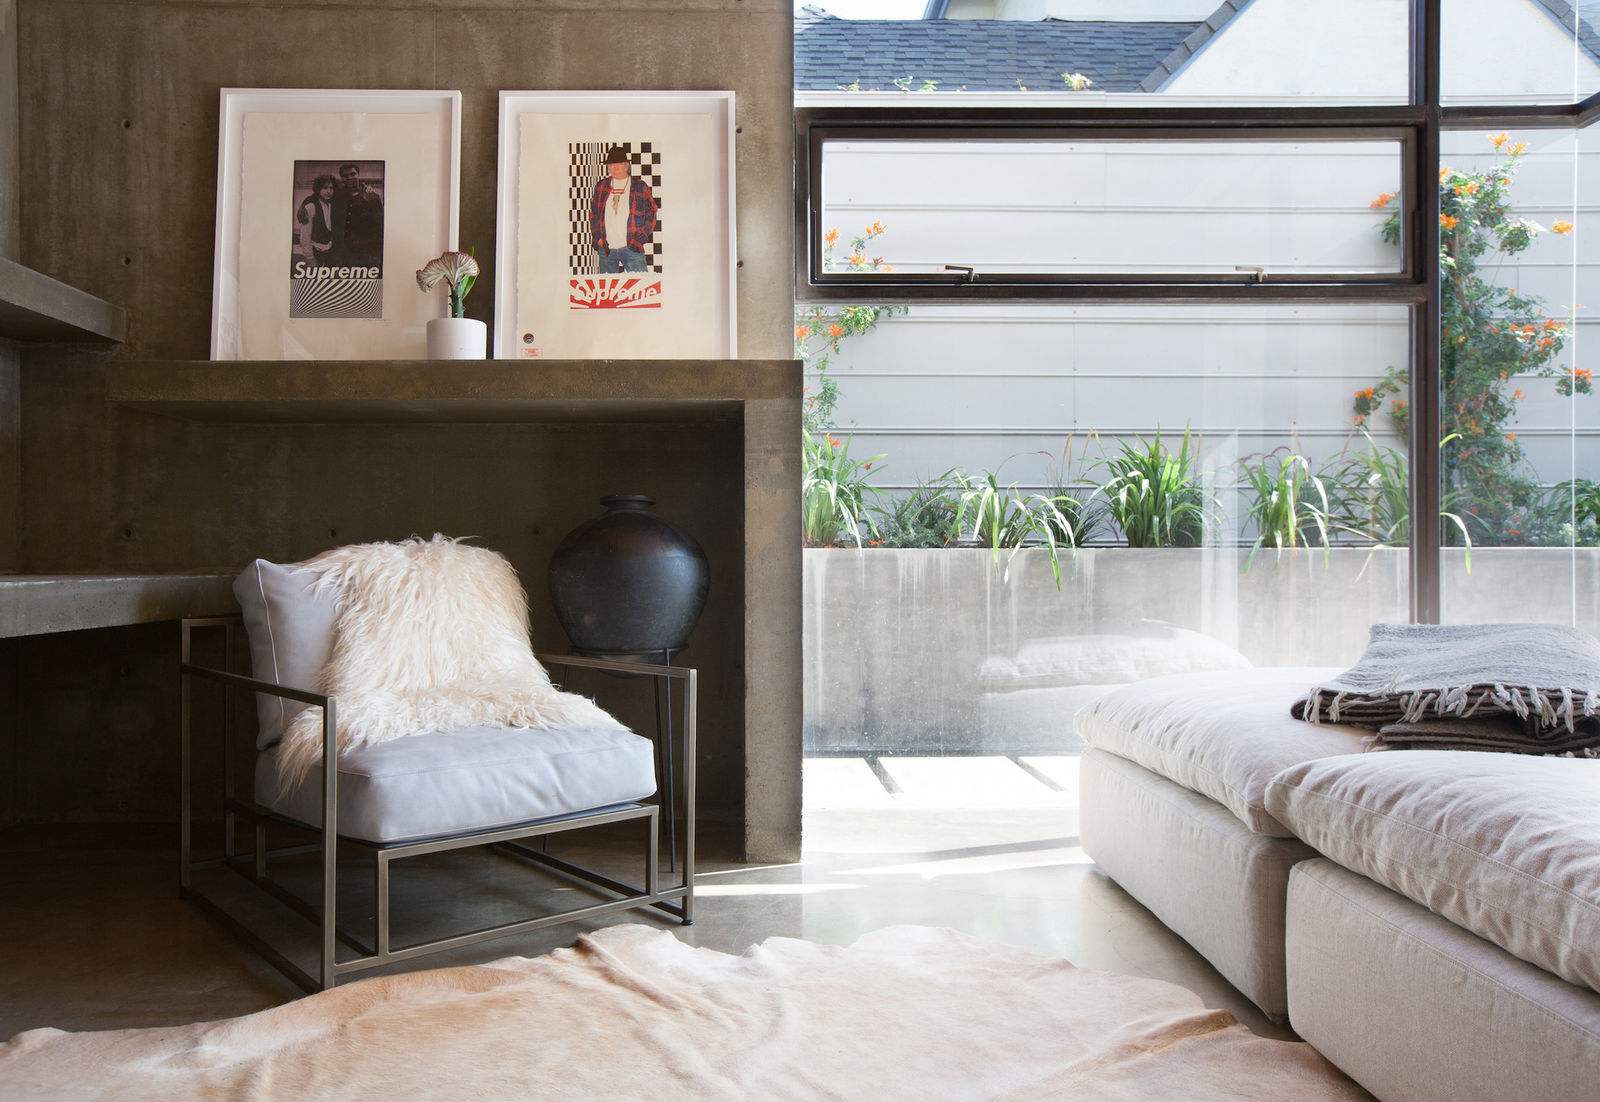 Organic and natural California chic styled interior by Leanne Ford with modern upholstered arm chair, cow hide rug, and huge wall of glass. #leanneford #rusticdecor #vintagechic